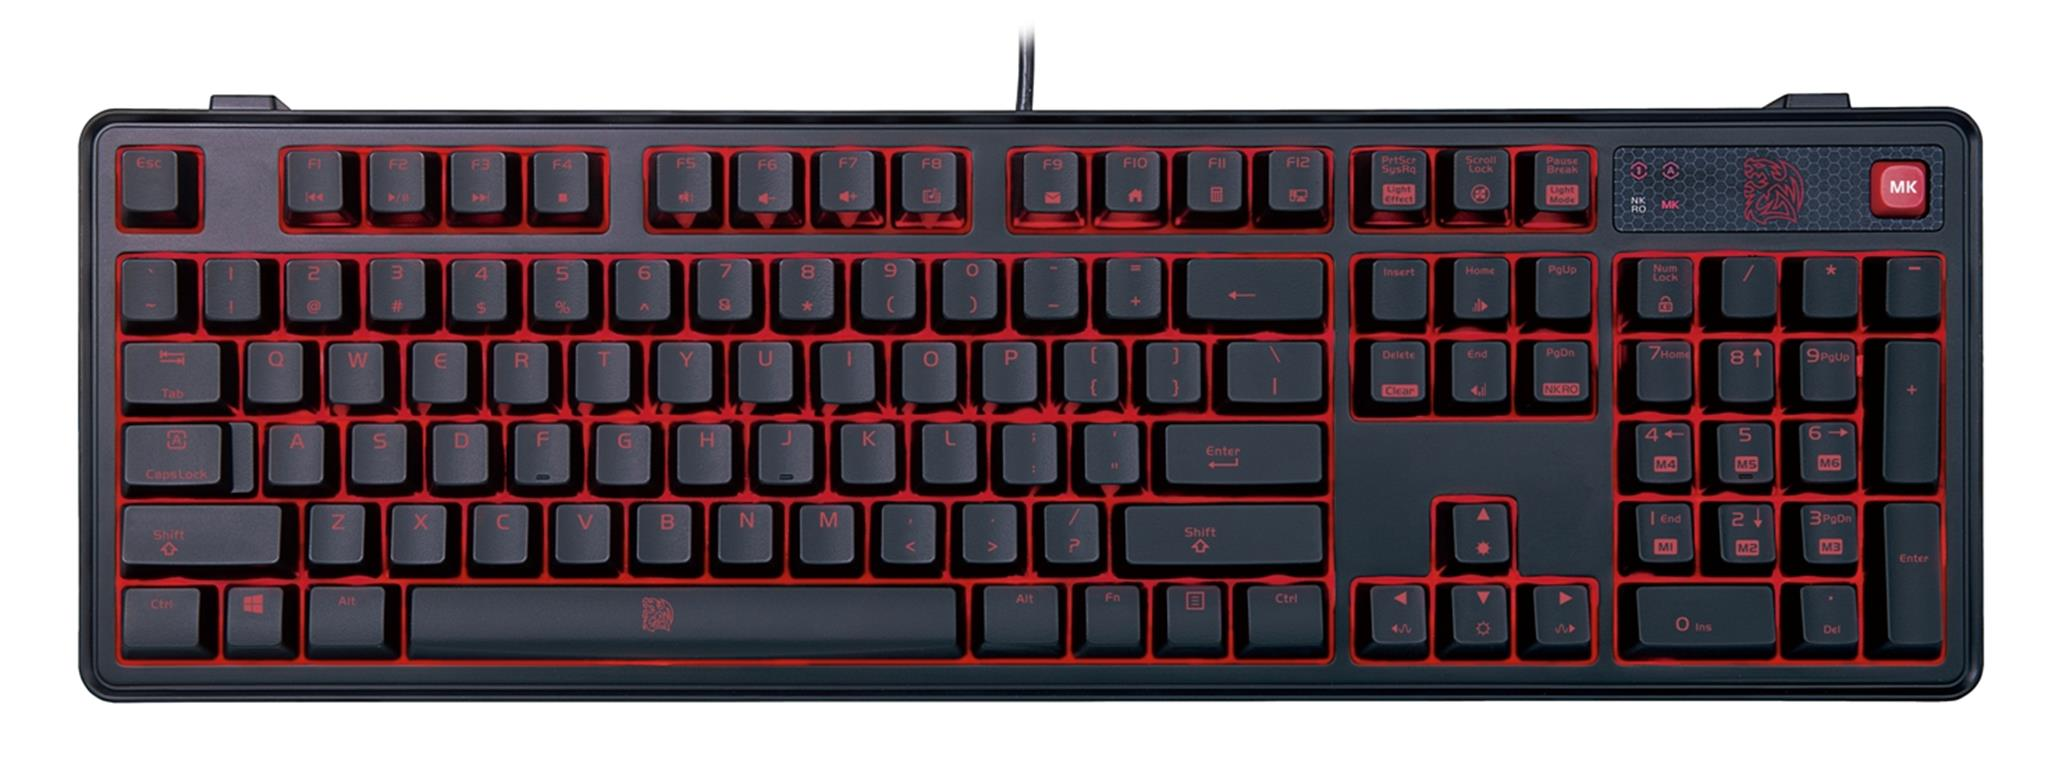 tt-esports-meka-pro-cherry-mx-mechanical-gaming-keyboard_1